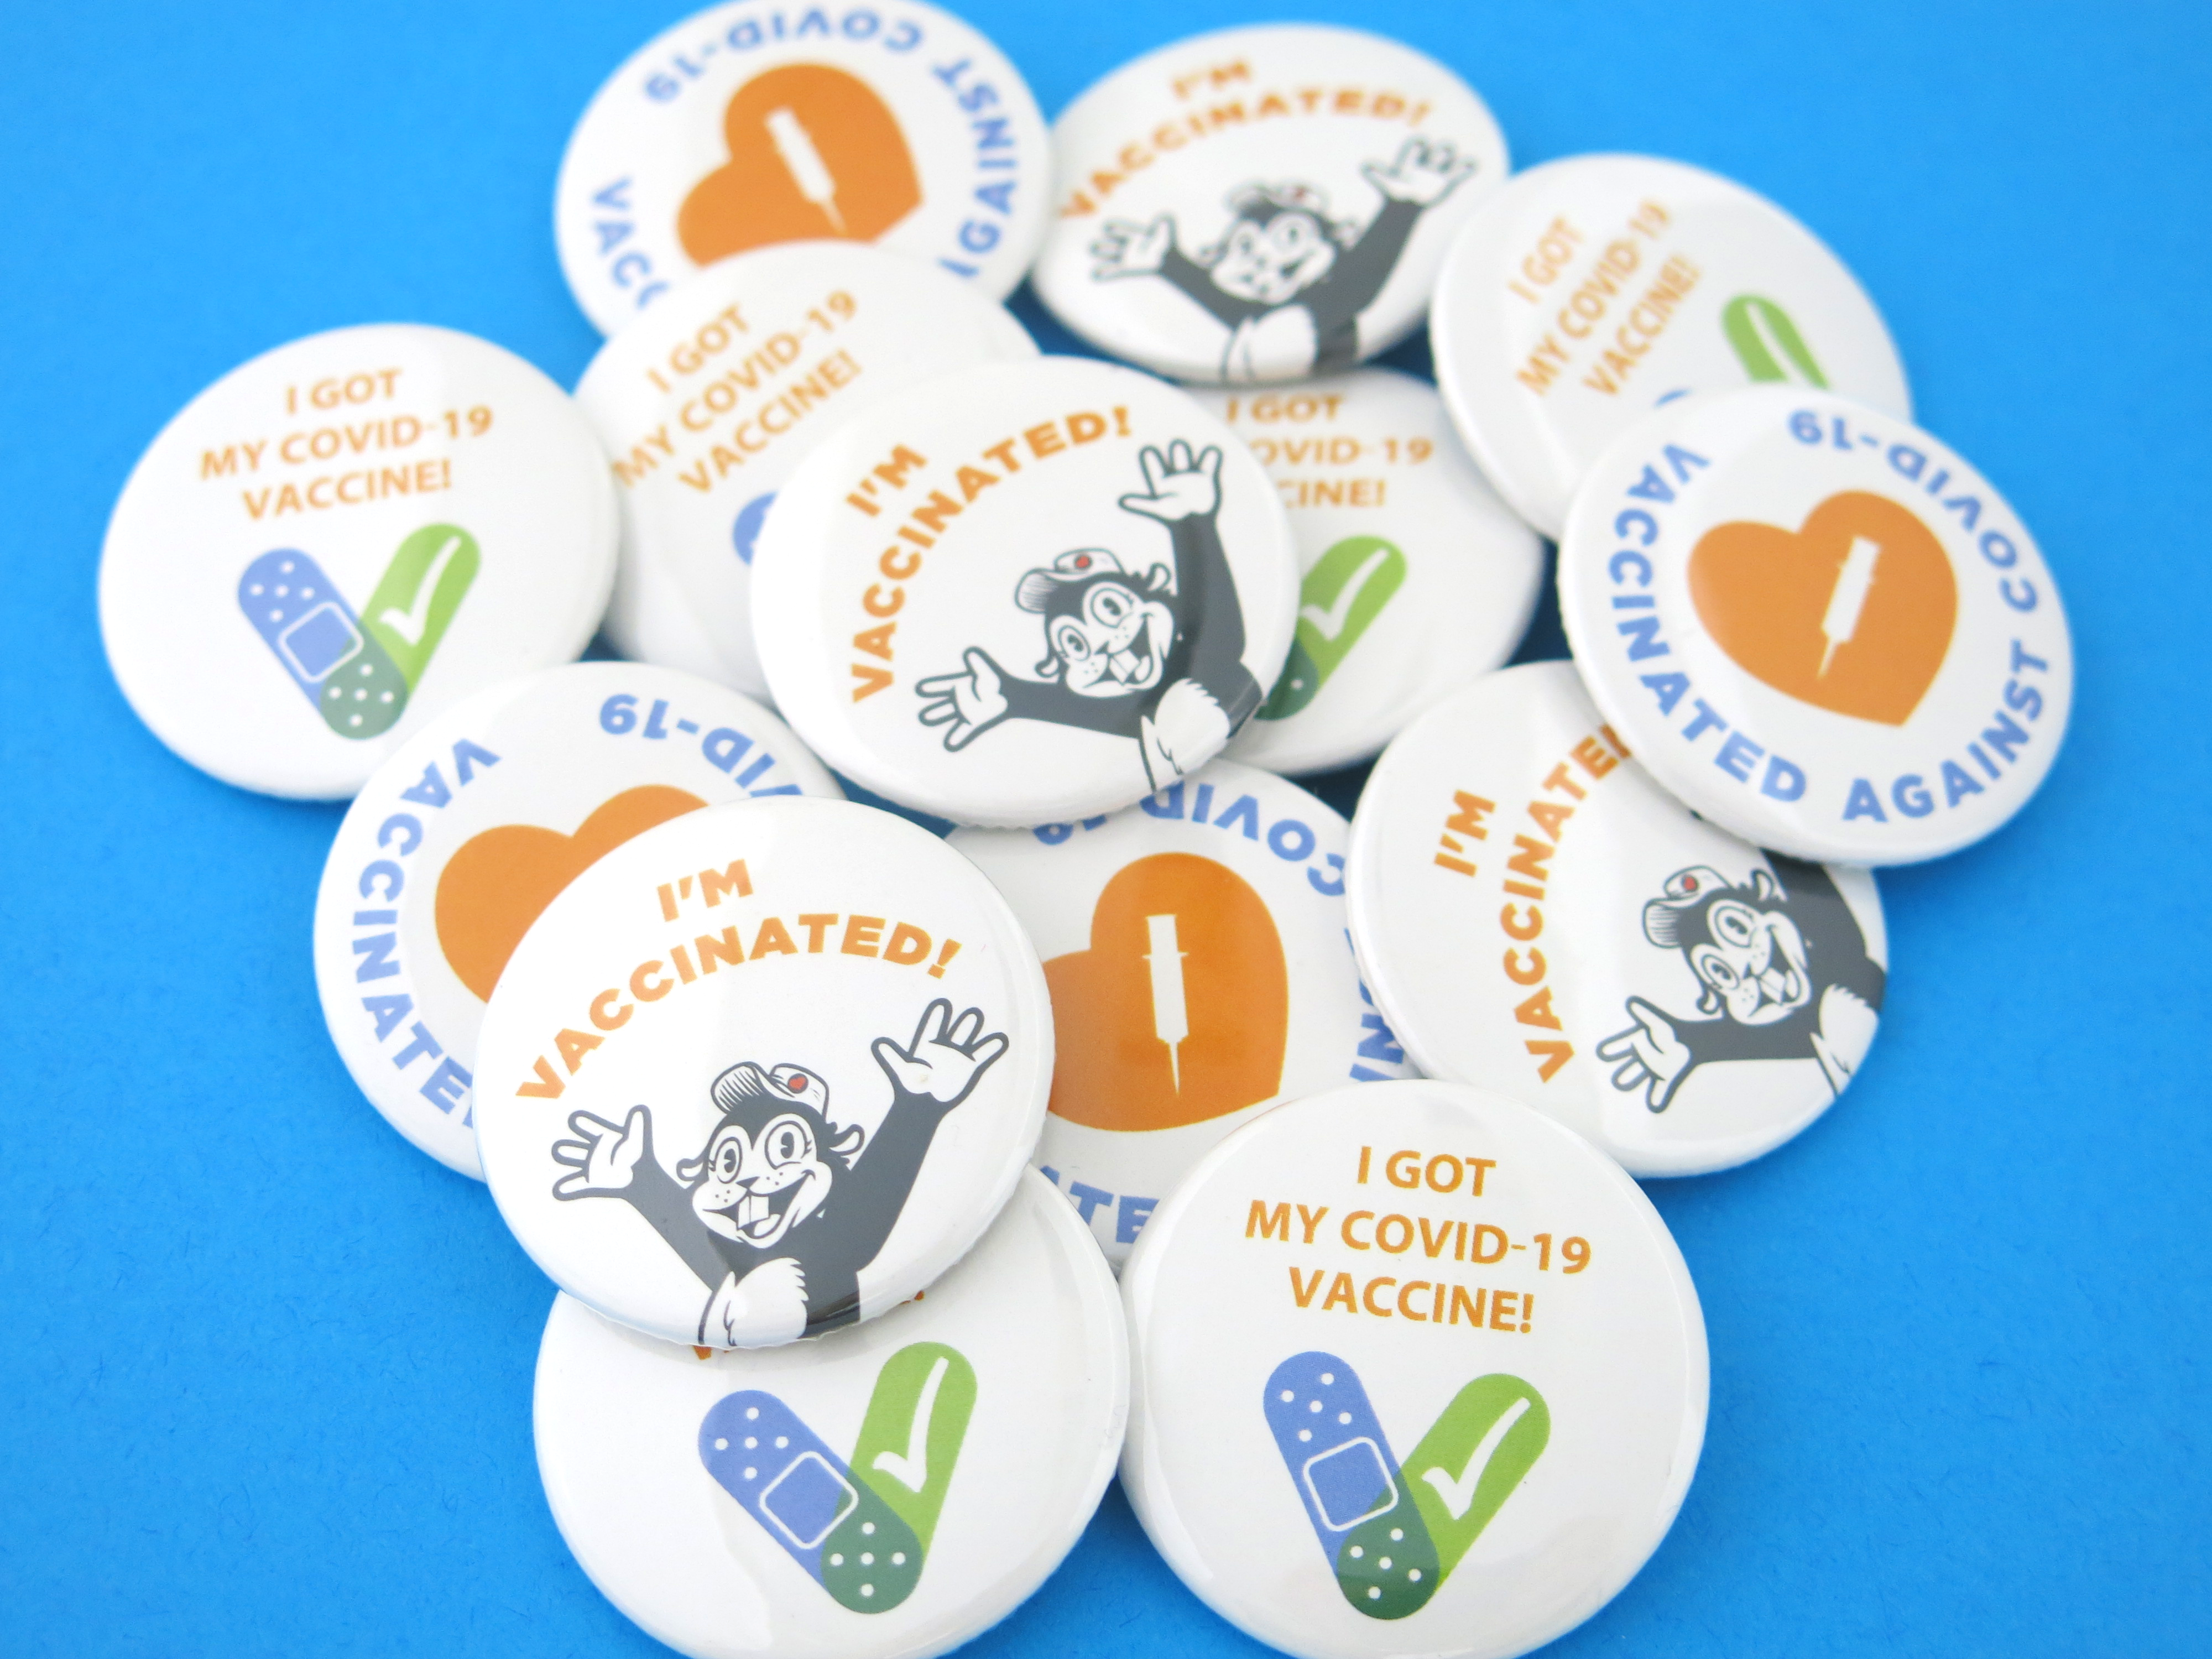 Vaccine Buttons